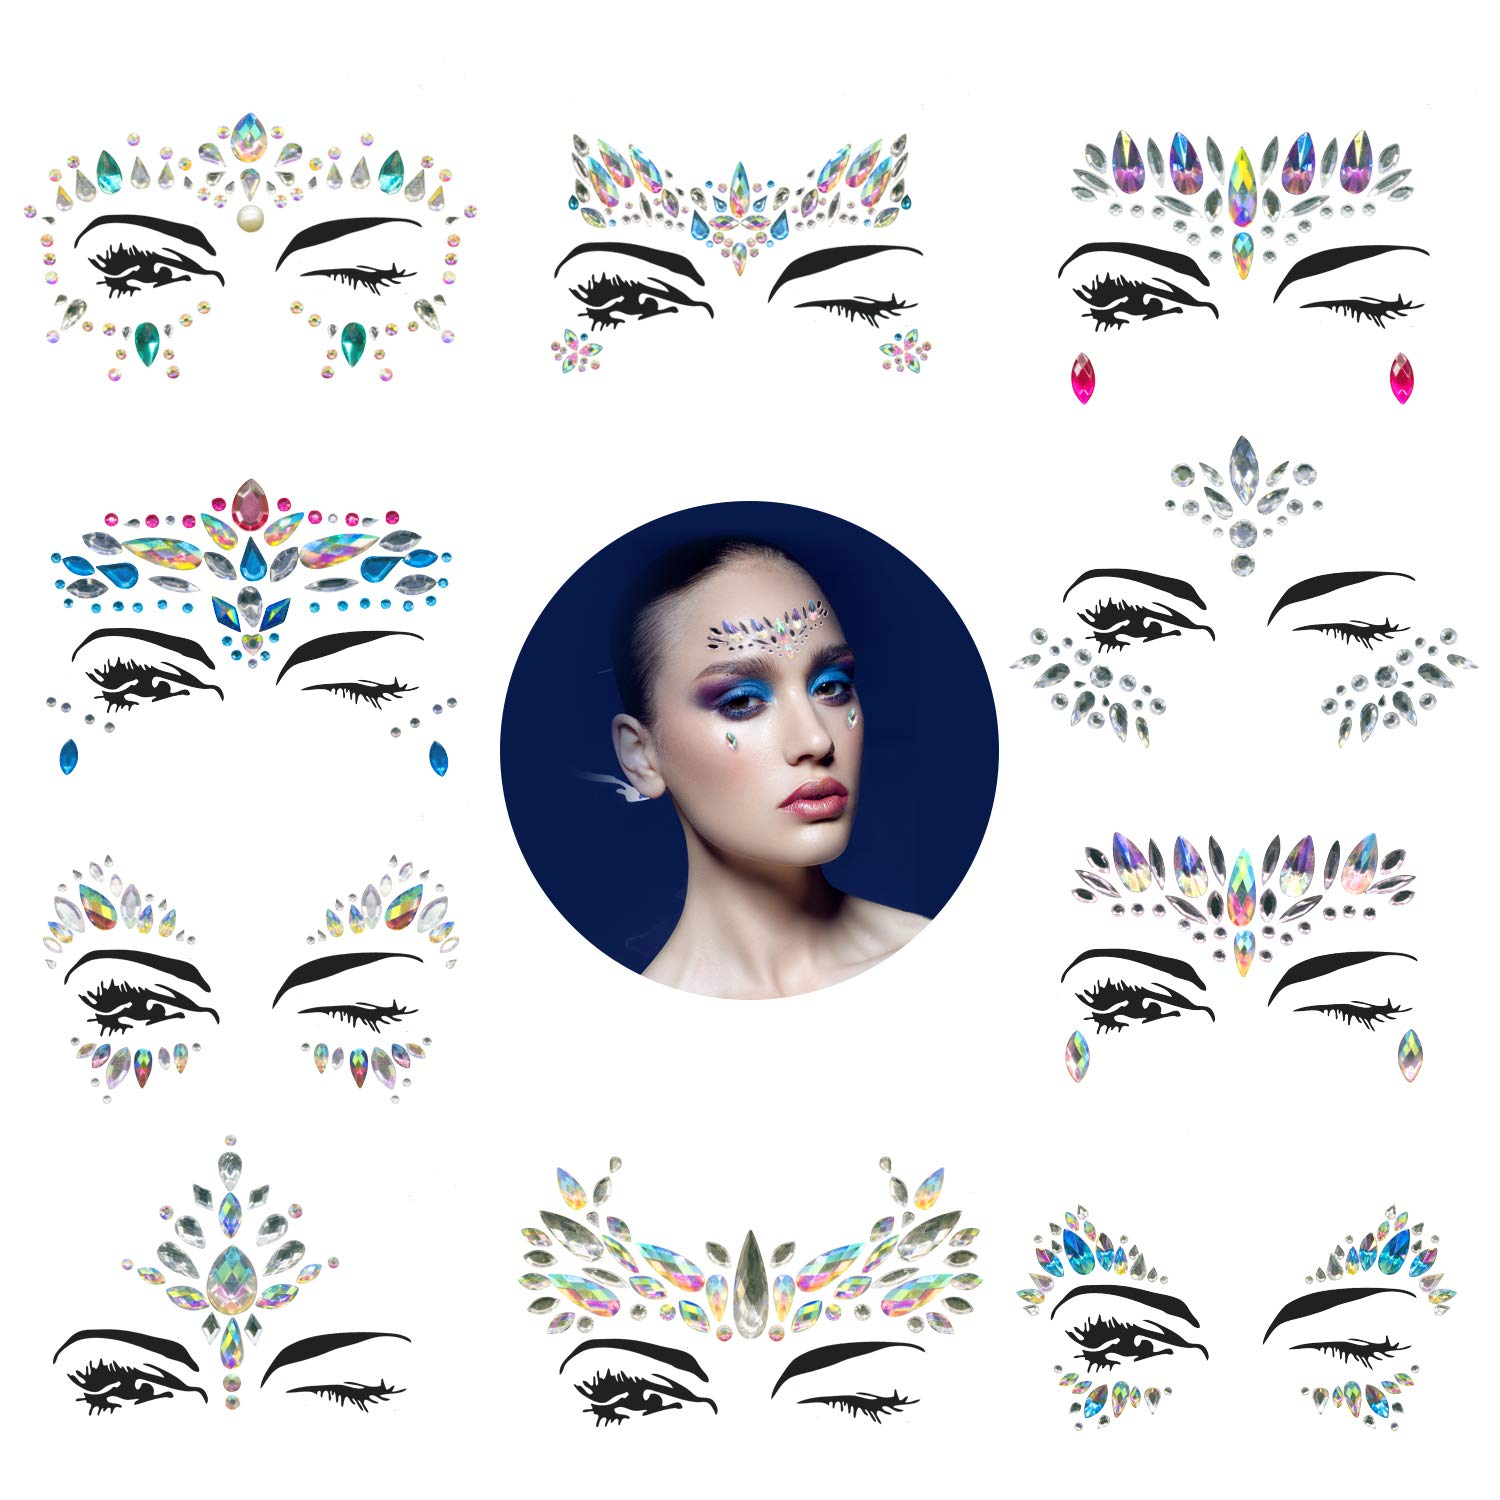 10 Sets Mermaid Face Gems Glitter - Rhinestone Rave Festival Face Jewels,Bindi Crystals Face Stickers, Eyes Face Body Stickers for Music Festivals Bohemian (Mermaid Tale)